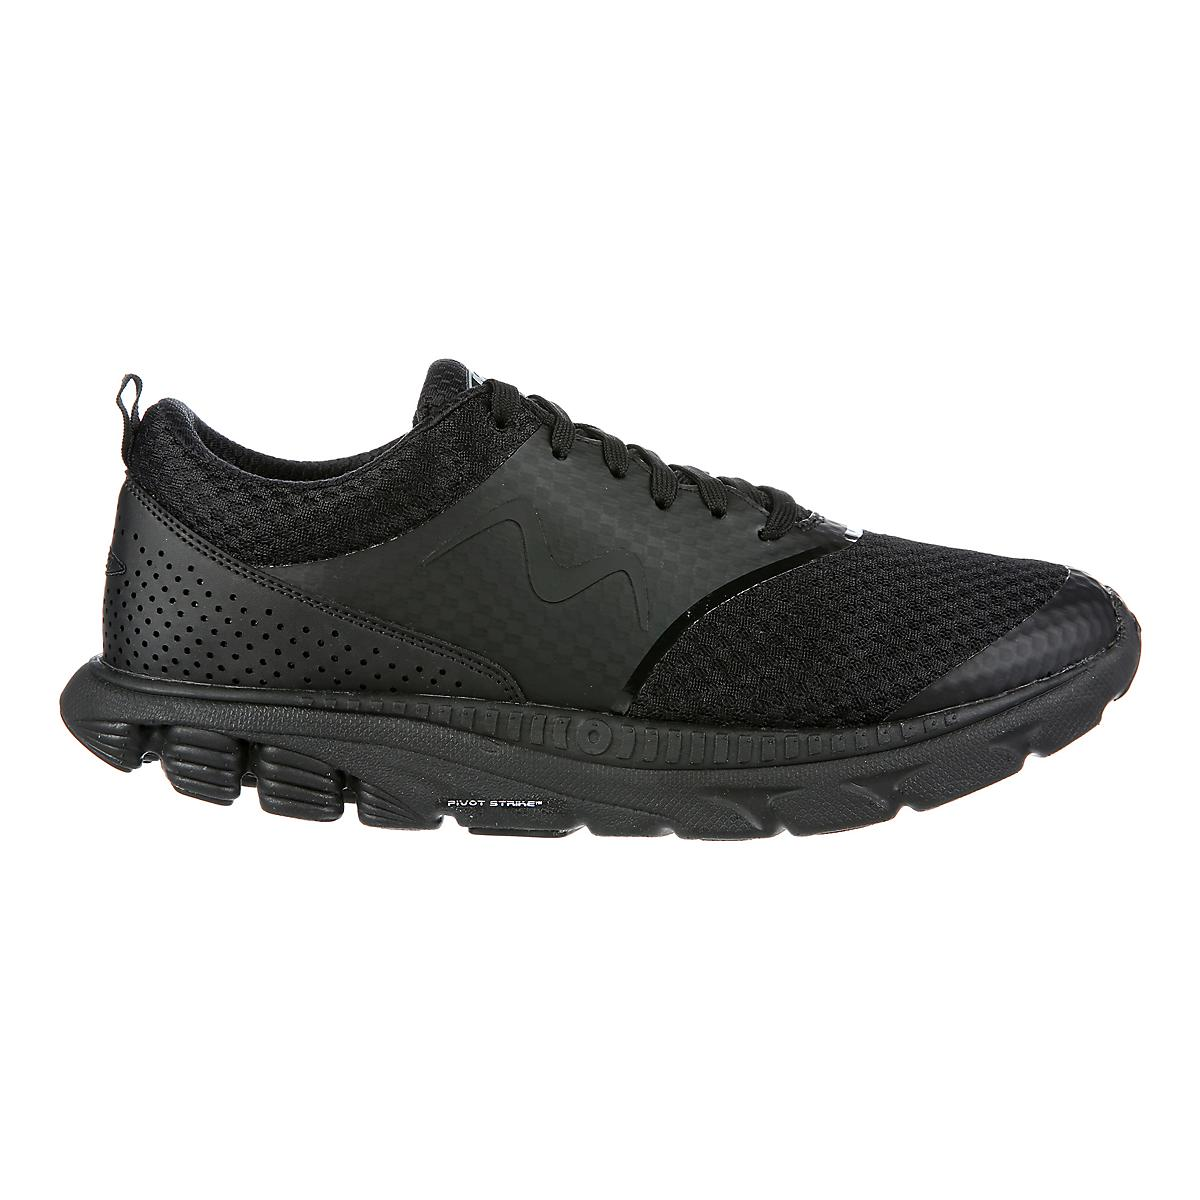 5fa2cc8682b5 Mens MBT Speed 17 Lace Up Running Shoe at Road Runner Sports